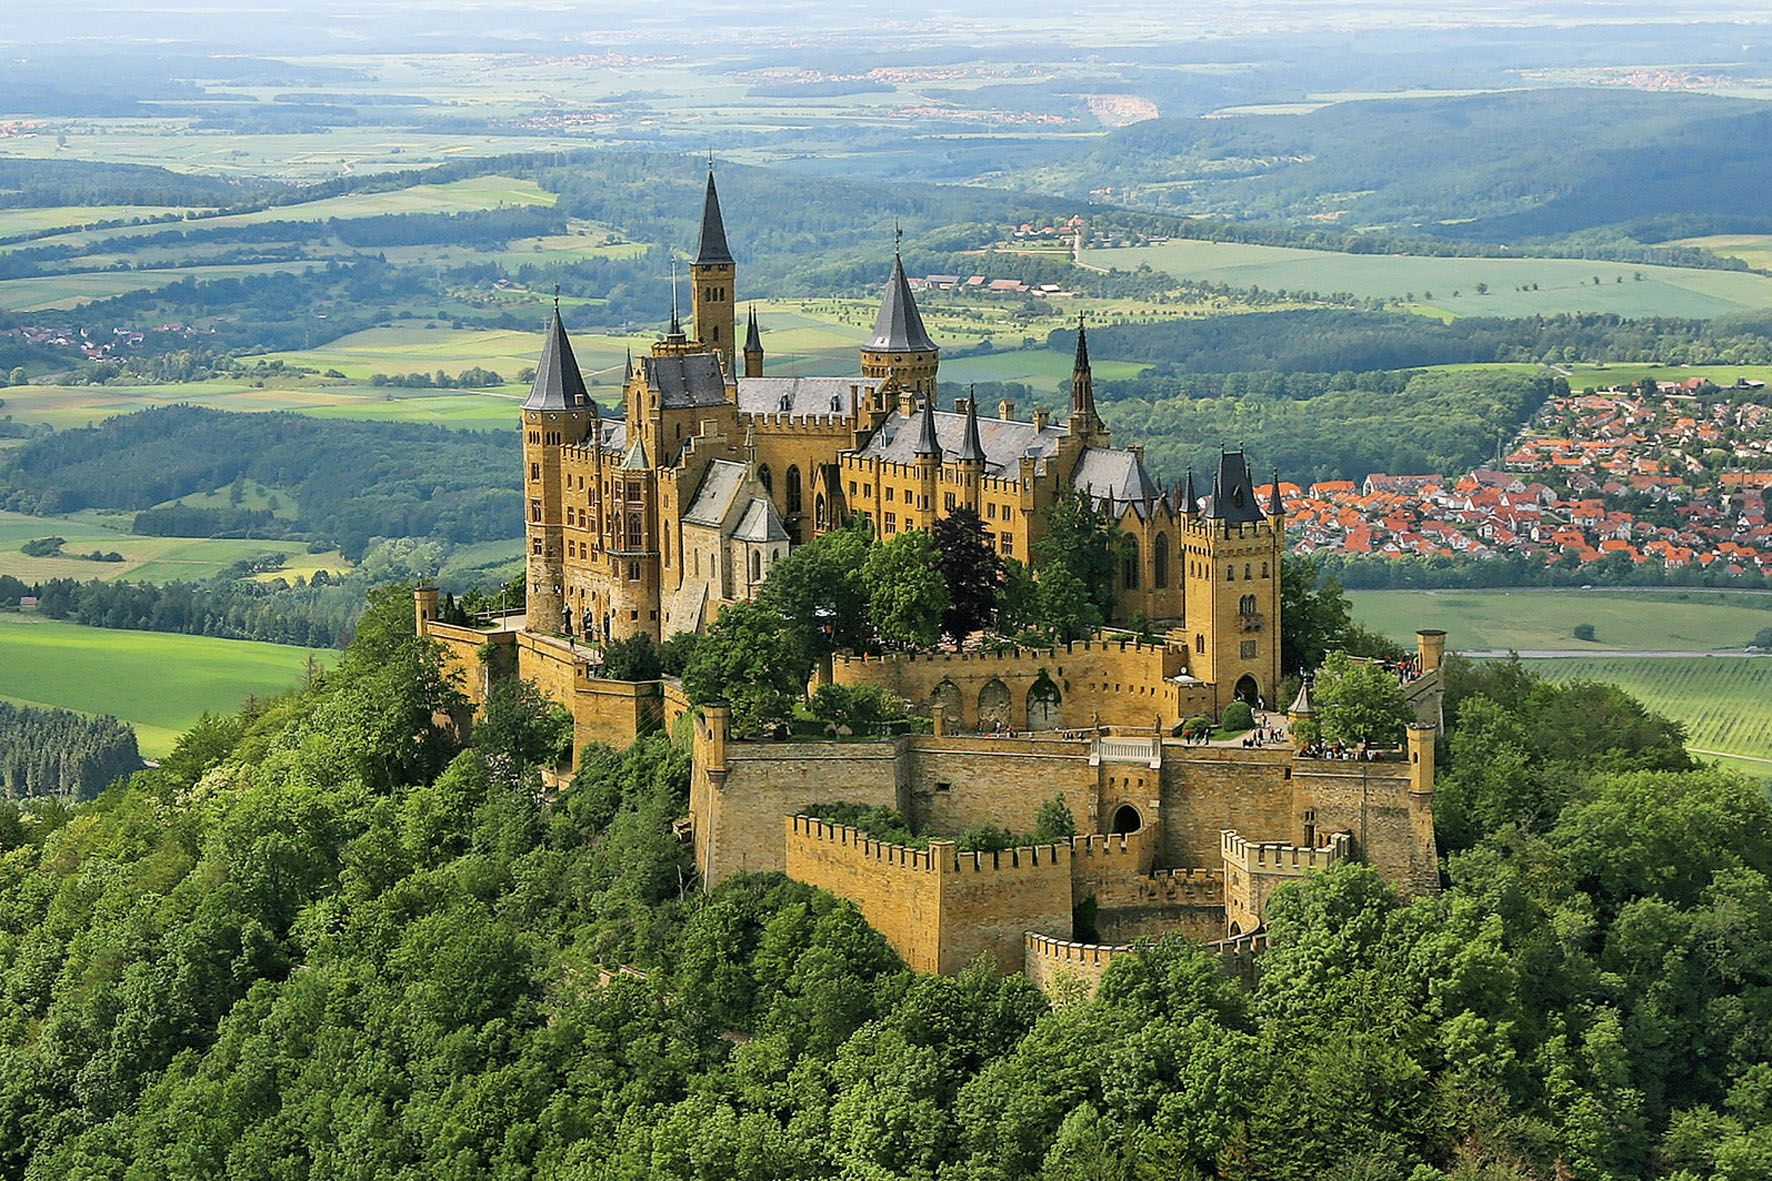 Burg Hohenzollern Hohenzollern Castle Is The Ancestral Seat Of The Imperial House Of Hohenzollern N 1 Germany Castles Hohenzollern Castle European Castles